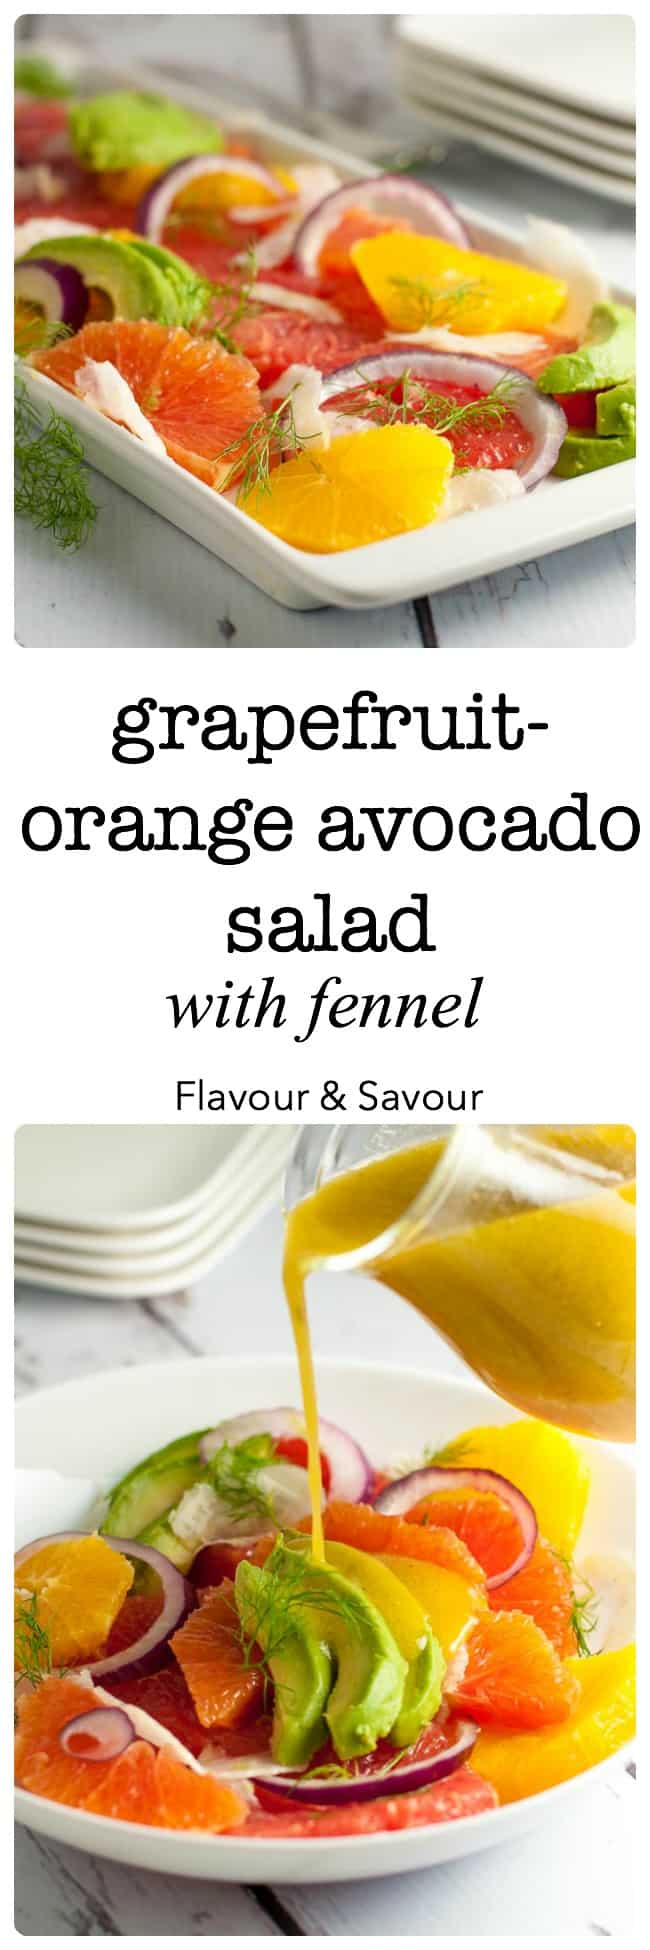 Grapefruit-Orange Avocado Salad with Fennel. Banish the winter blues with this cheerful bright grapefruit orange and avocado salad, bursting with Vitamin C! |www.flavourandsavour.com